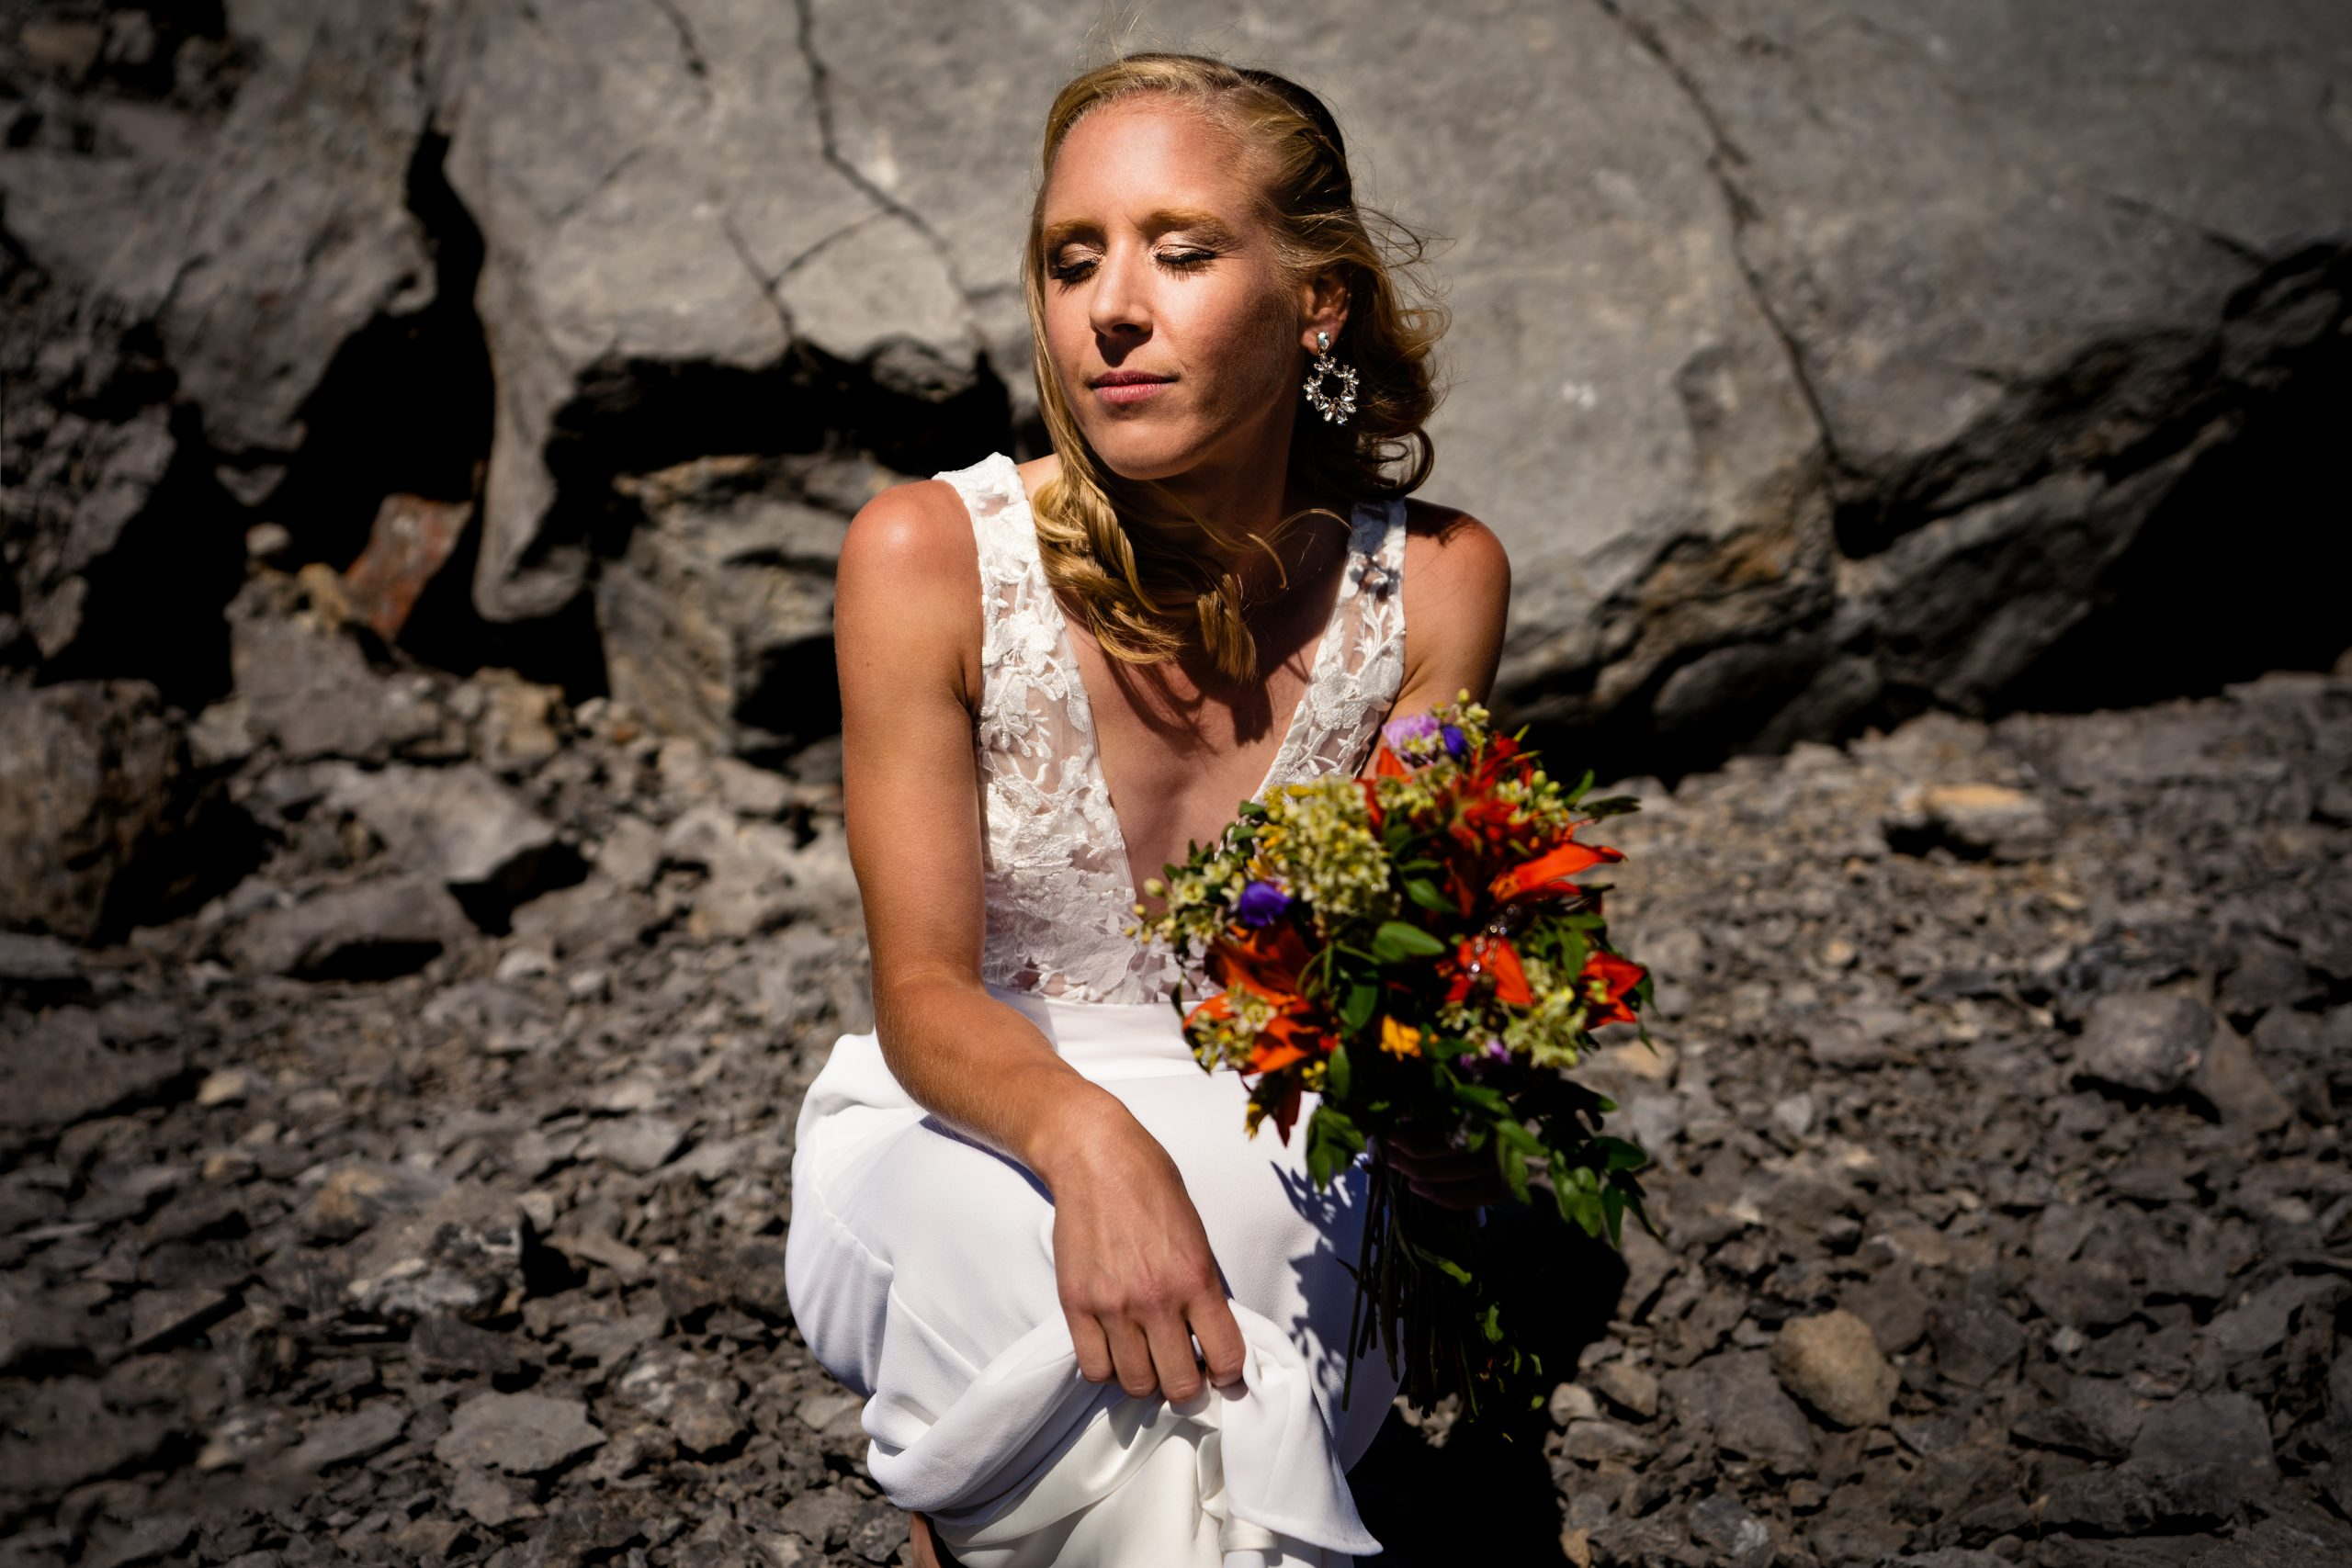 photo of a bride on a mountain posing with a flower bouquet